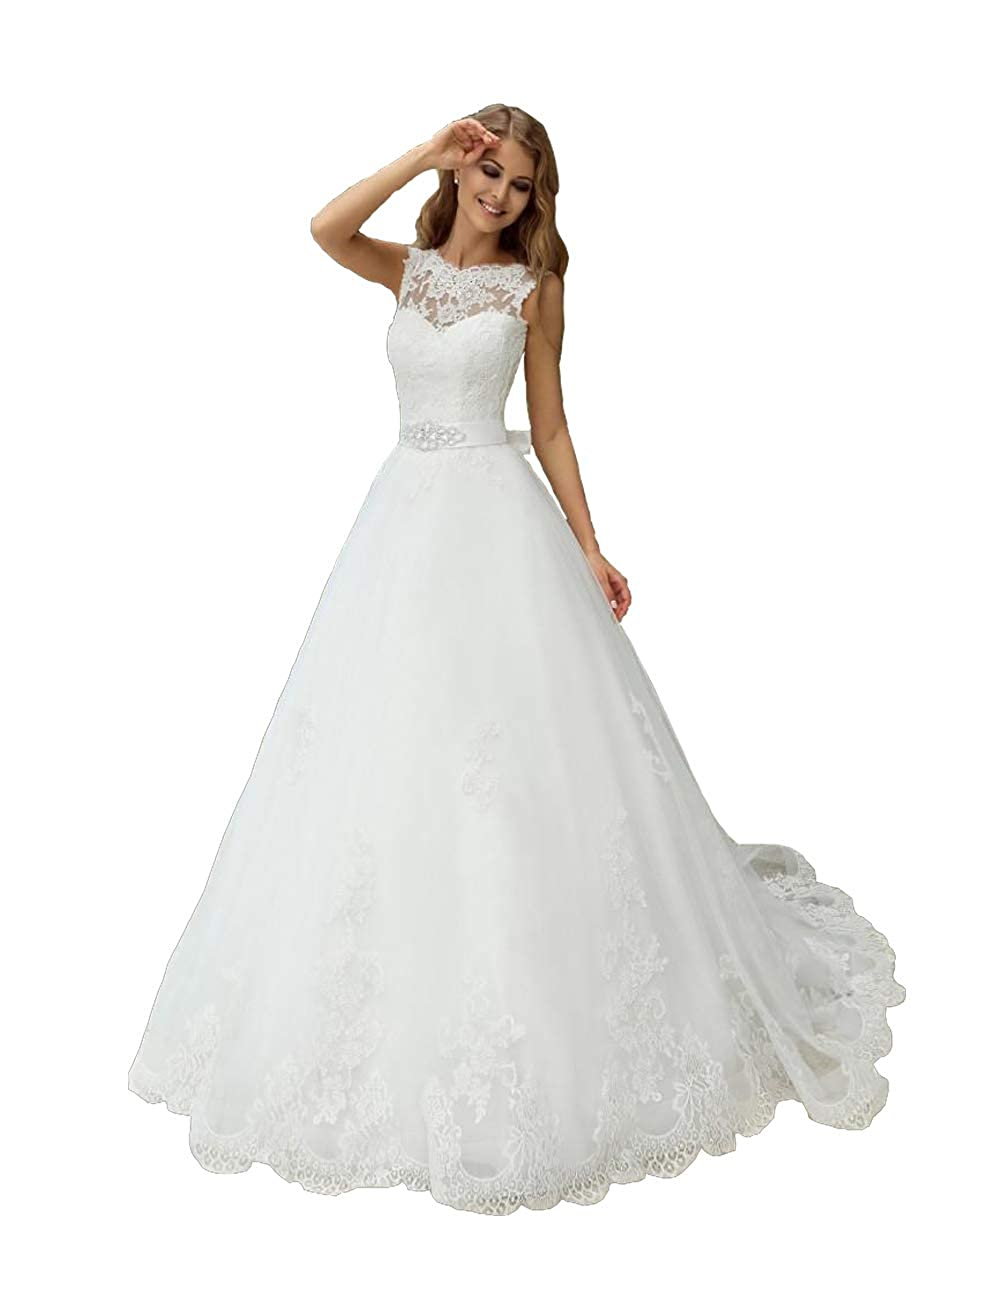 41b117d7892 Wedding Dresses Sleeveless Lace Applique Sweep Train White Backless Bridal  Gowns at Amazon Women s Clothing store